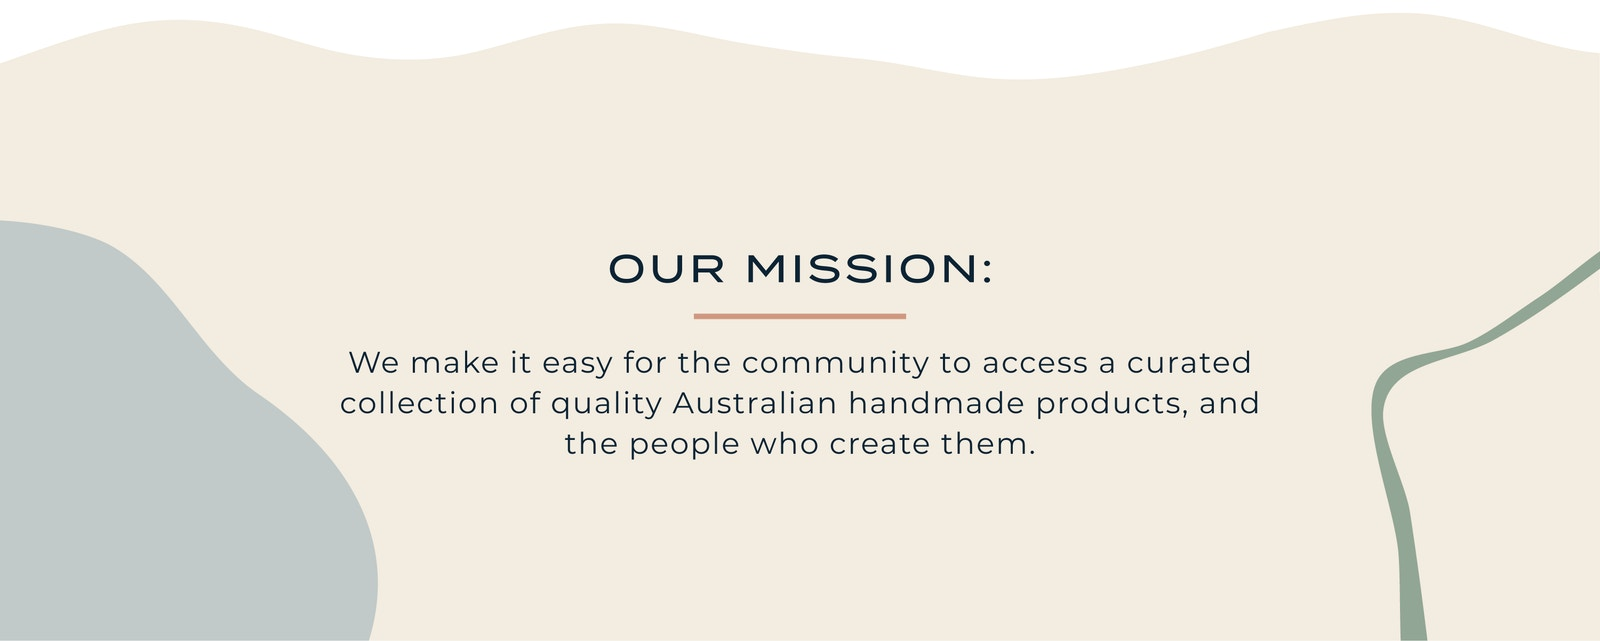 We make it easy for the community to access a curated collection of quality Australian Handmade Products and the people who create them.